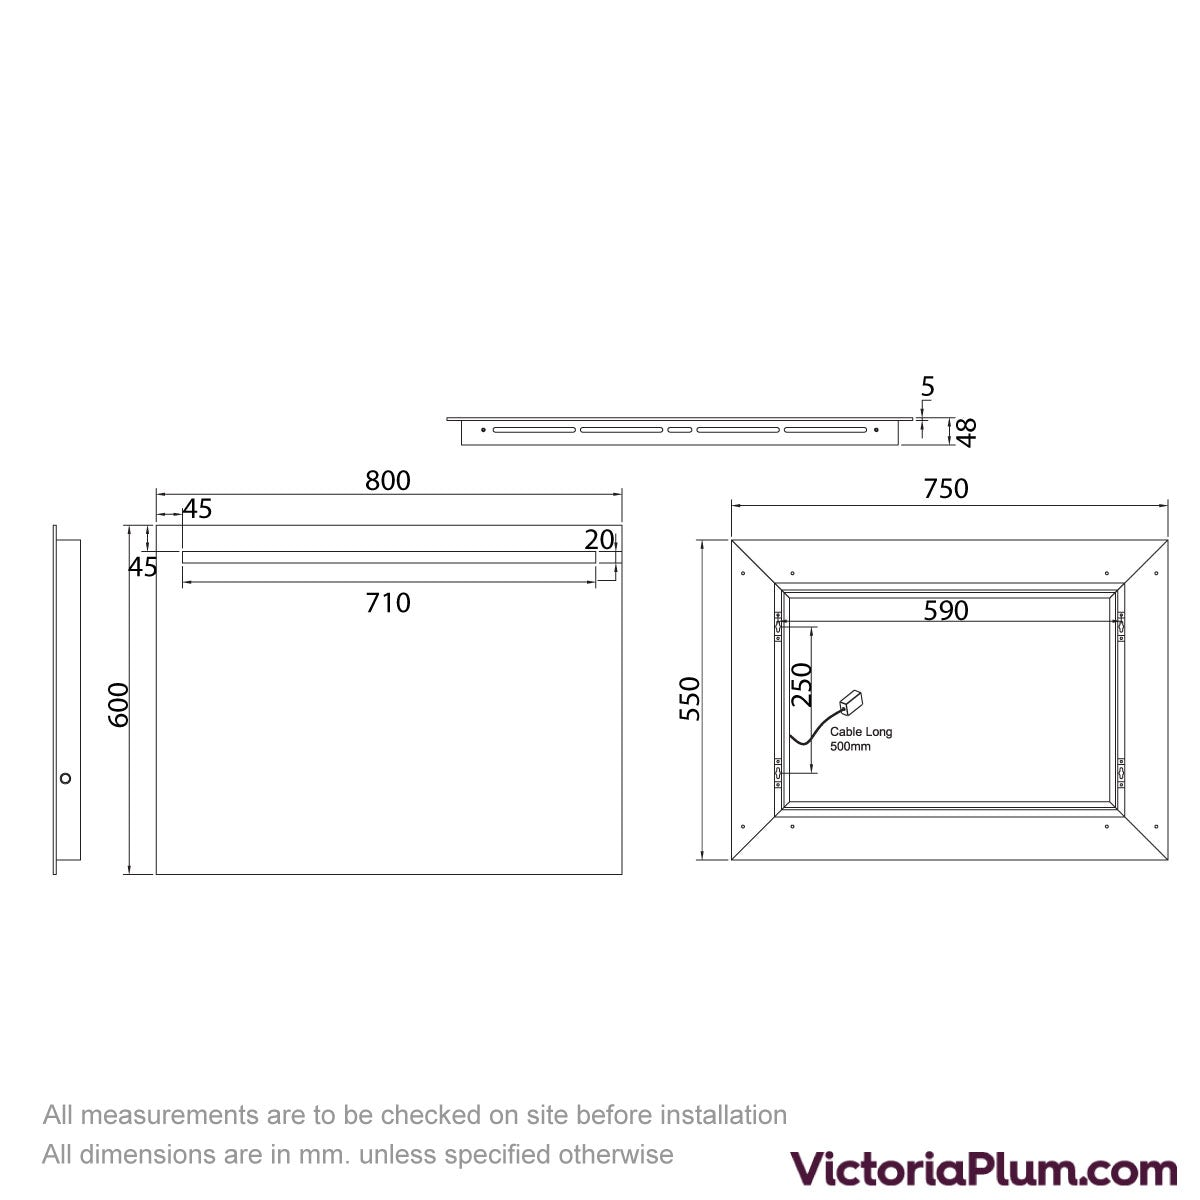 Dimensions for Mode Rossi LED Mirror with under light 800mm